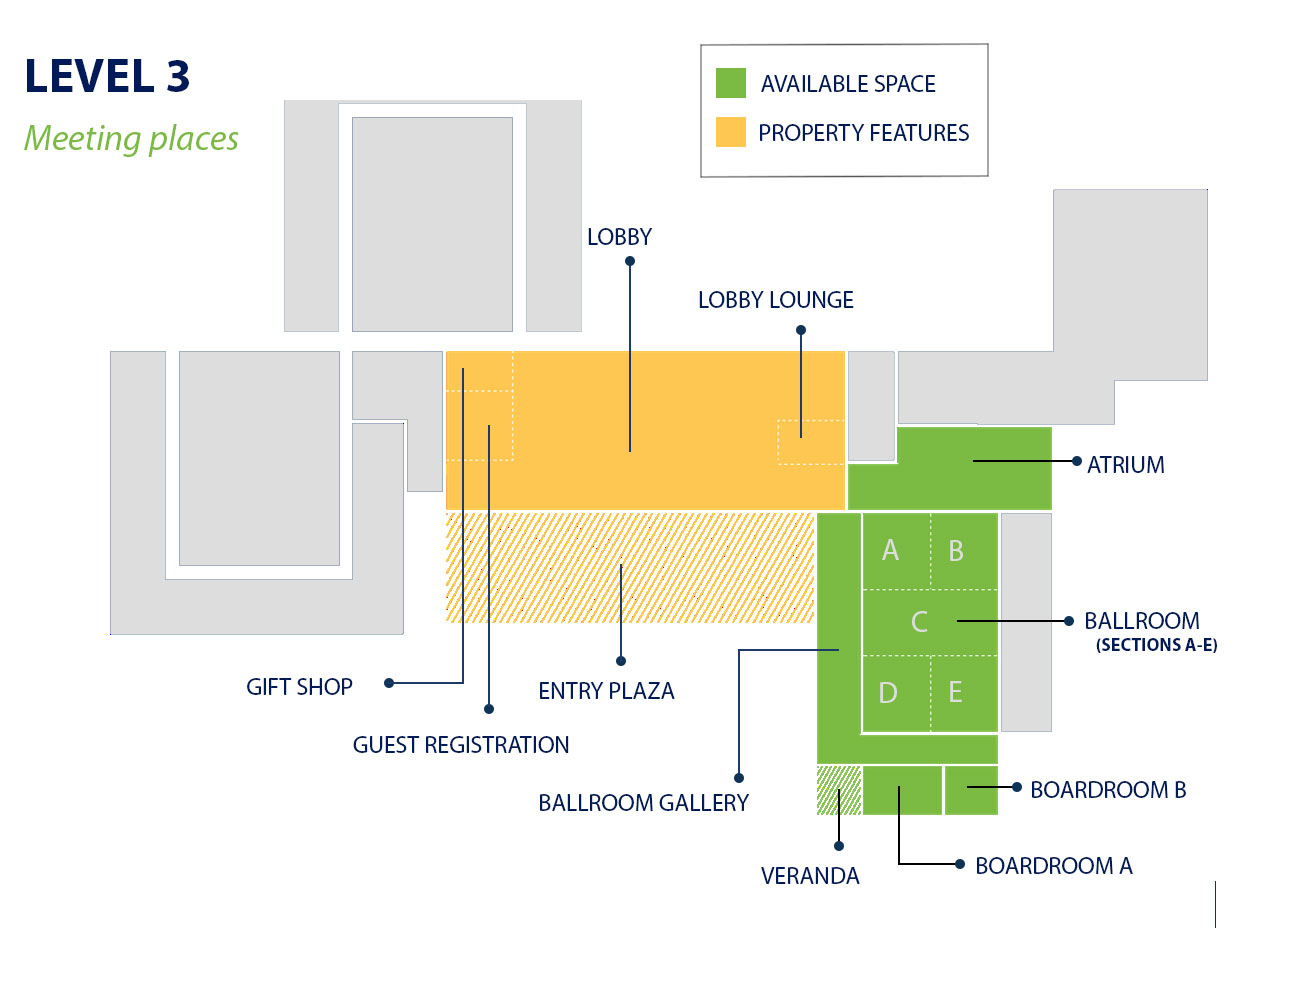 Level 3 meeting places with available space in green and property features in yellow